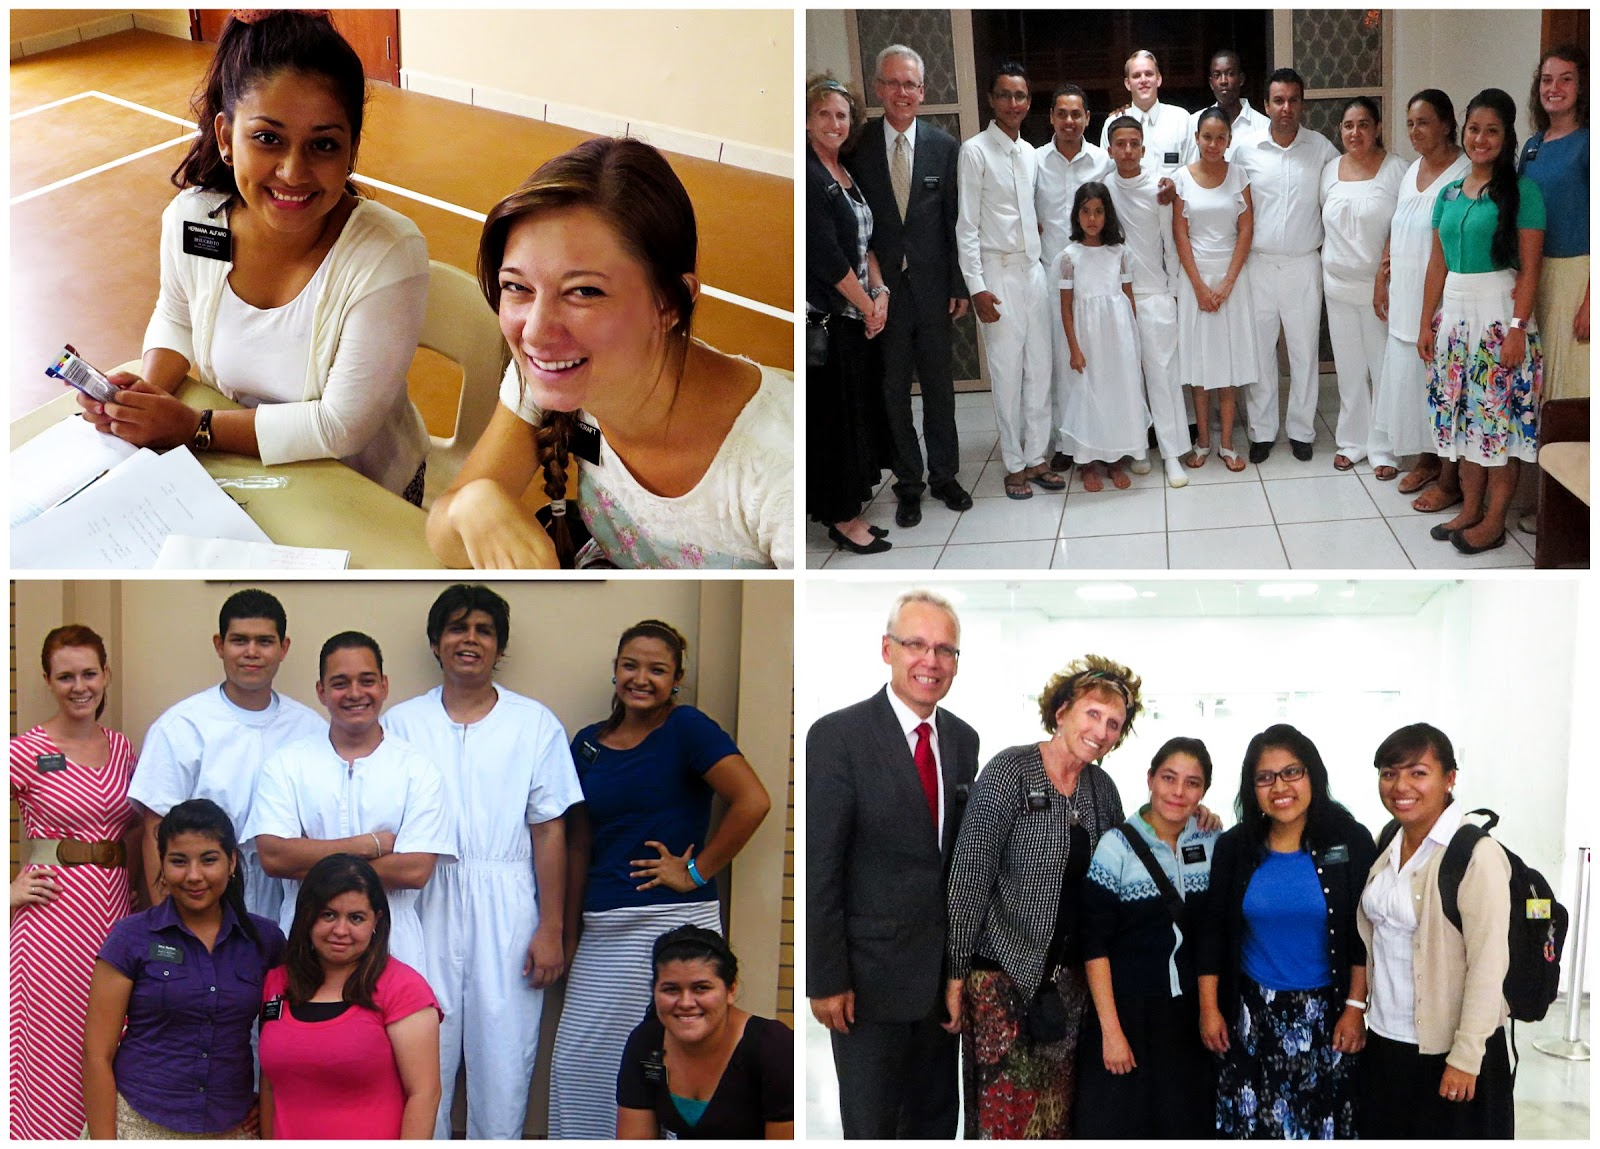 Women and the Mormon Church Today a force for good throughout the world